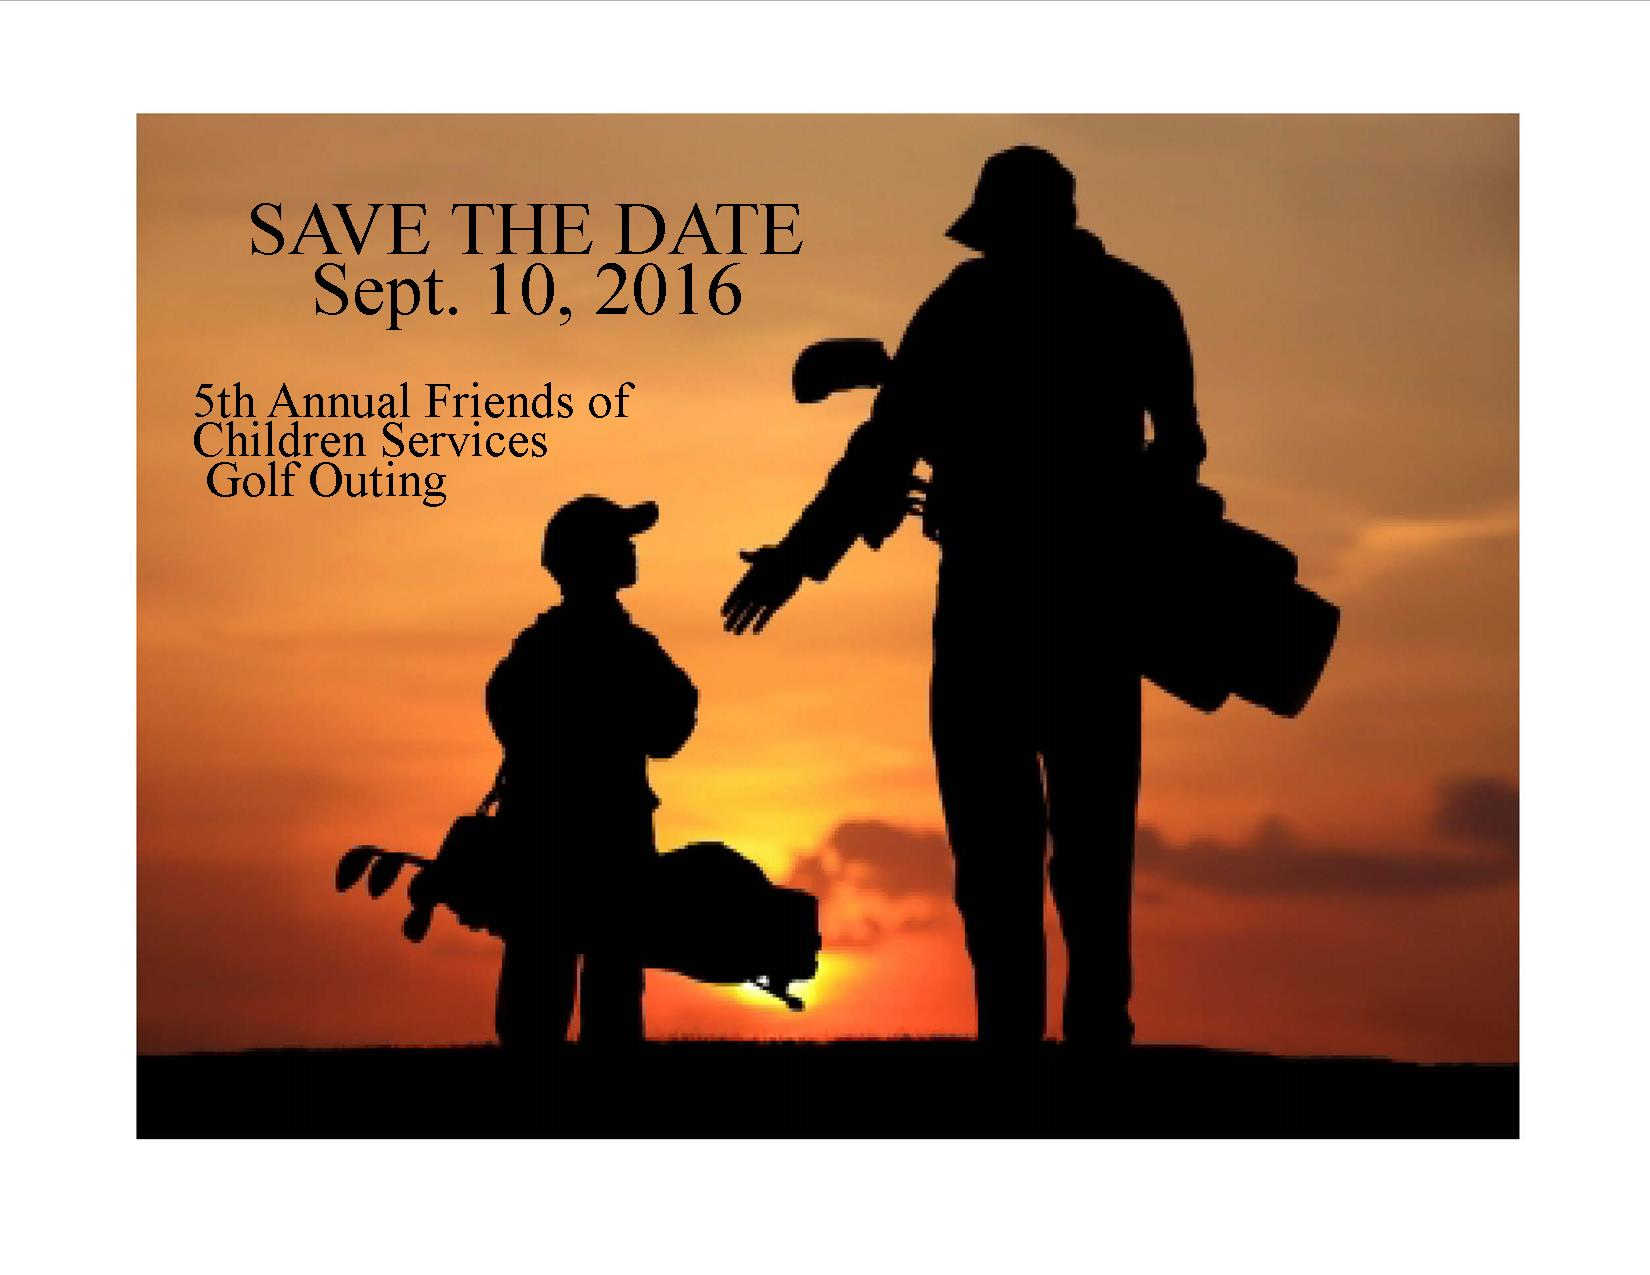 2016 Save the date sign